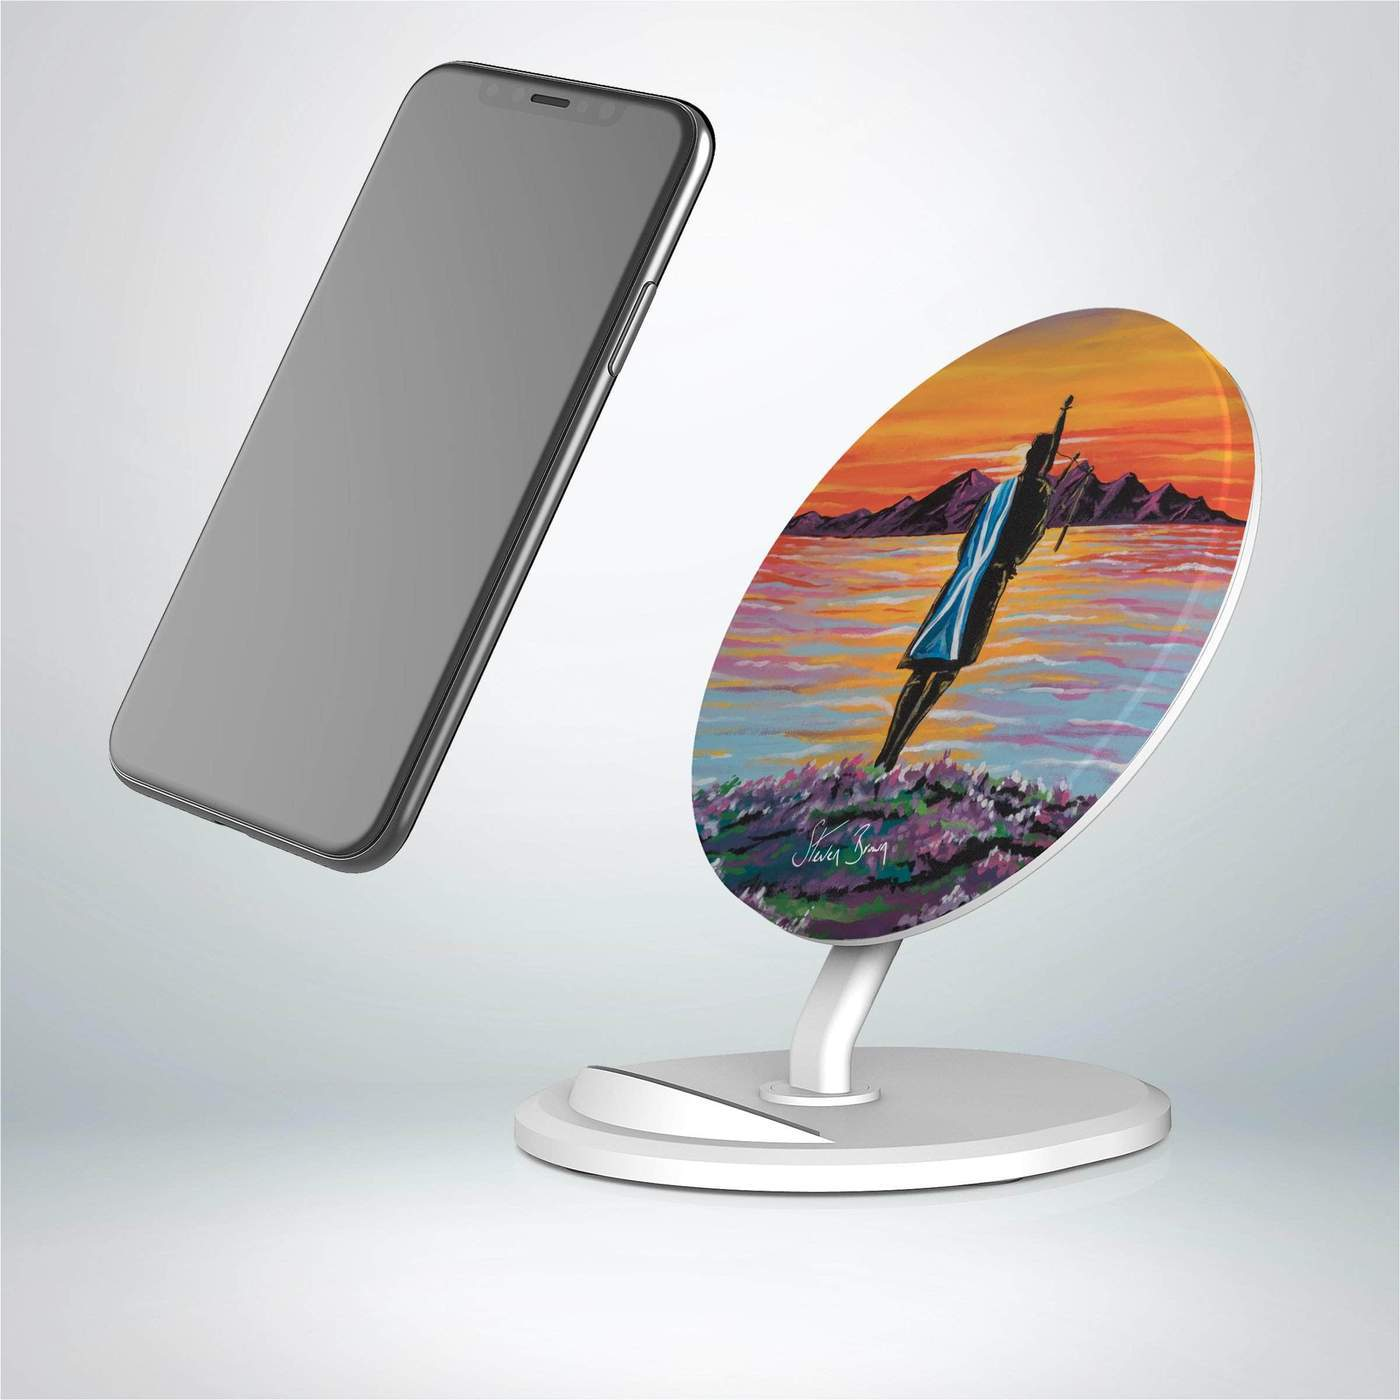 Steven Brown Wireless Charger - Technology collection